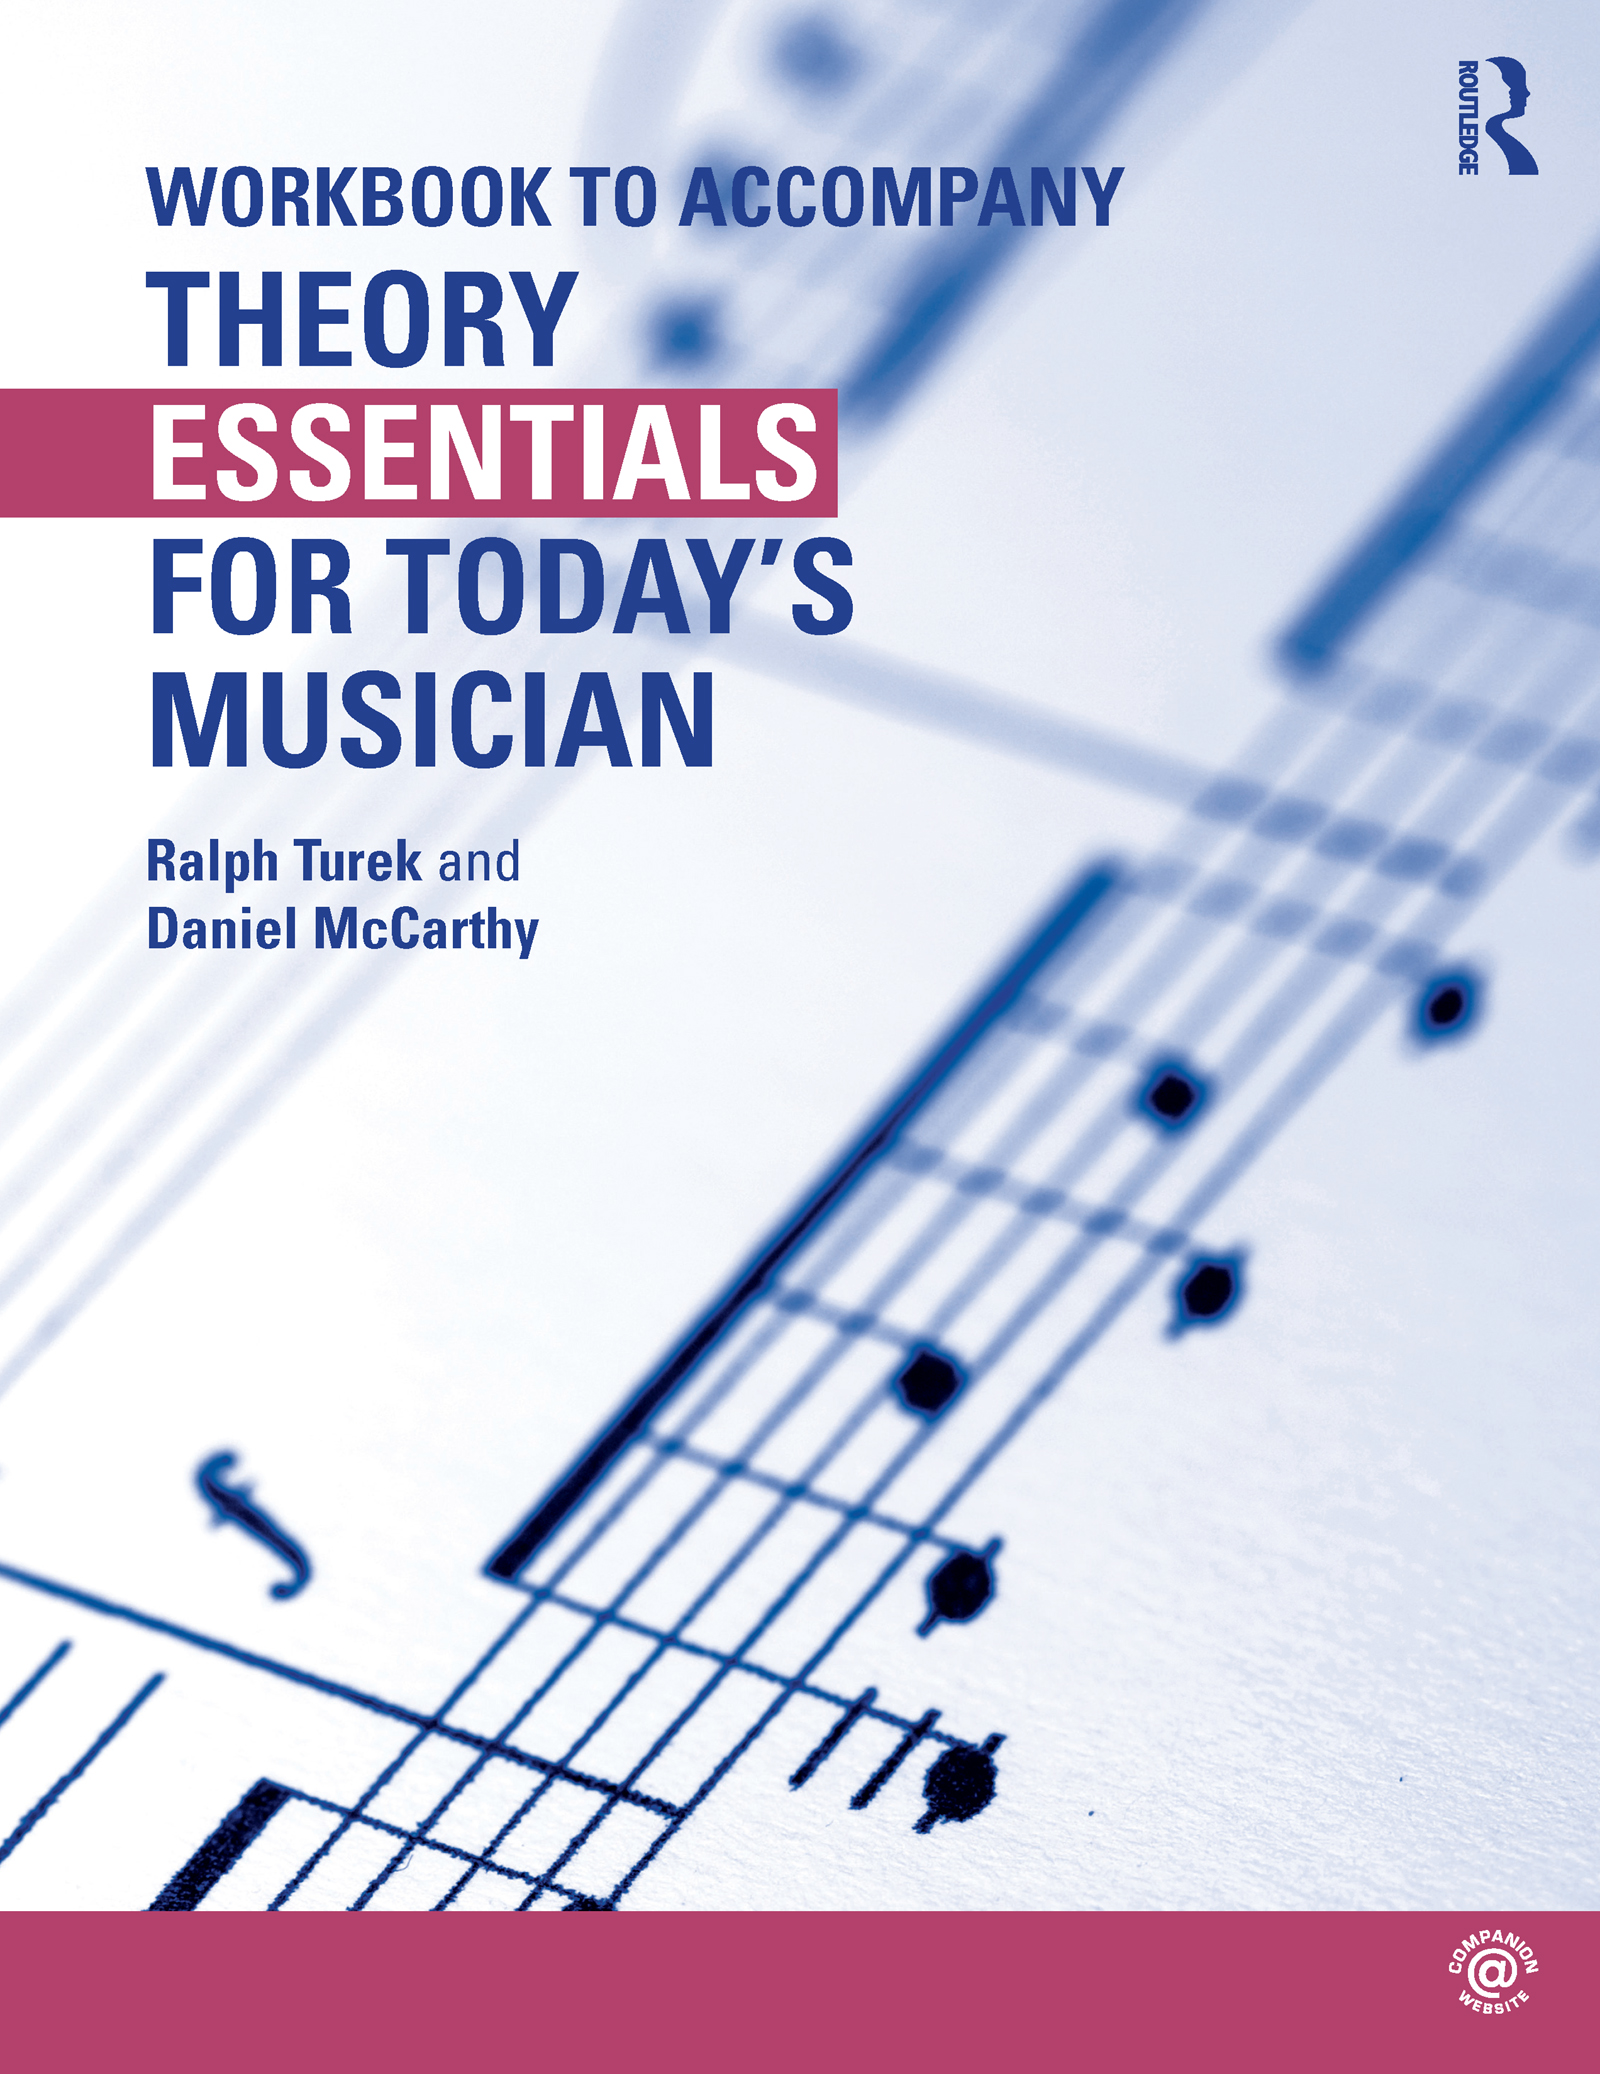 Theory Essentials for Today's Musician (Workbook) (Paperback) book cover